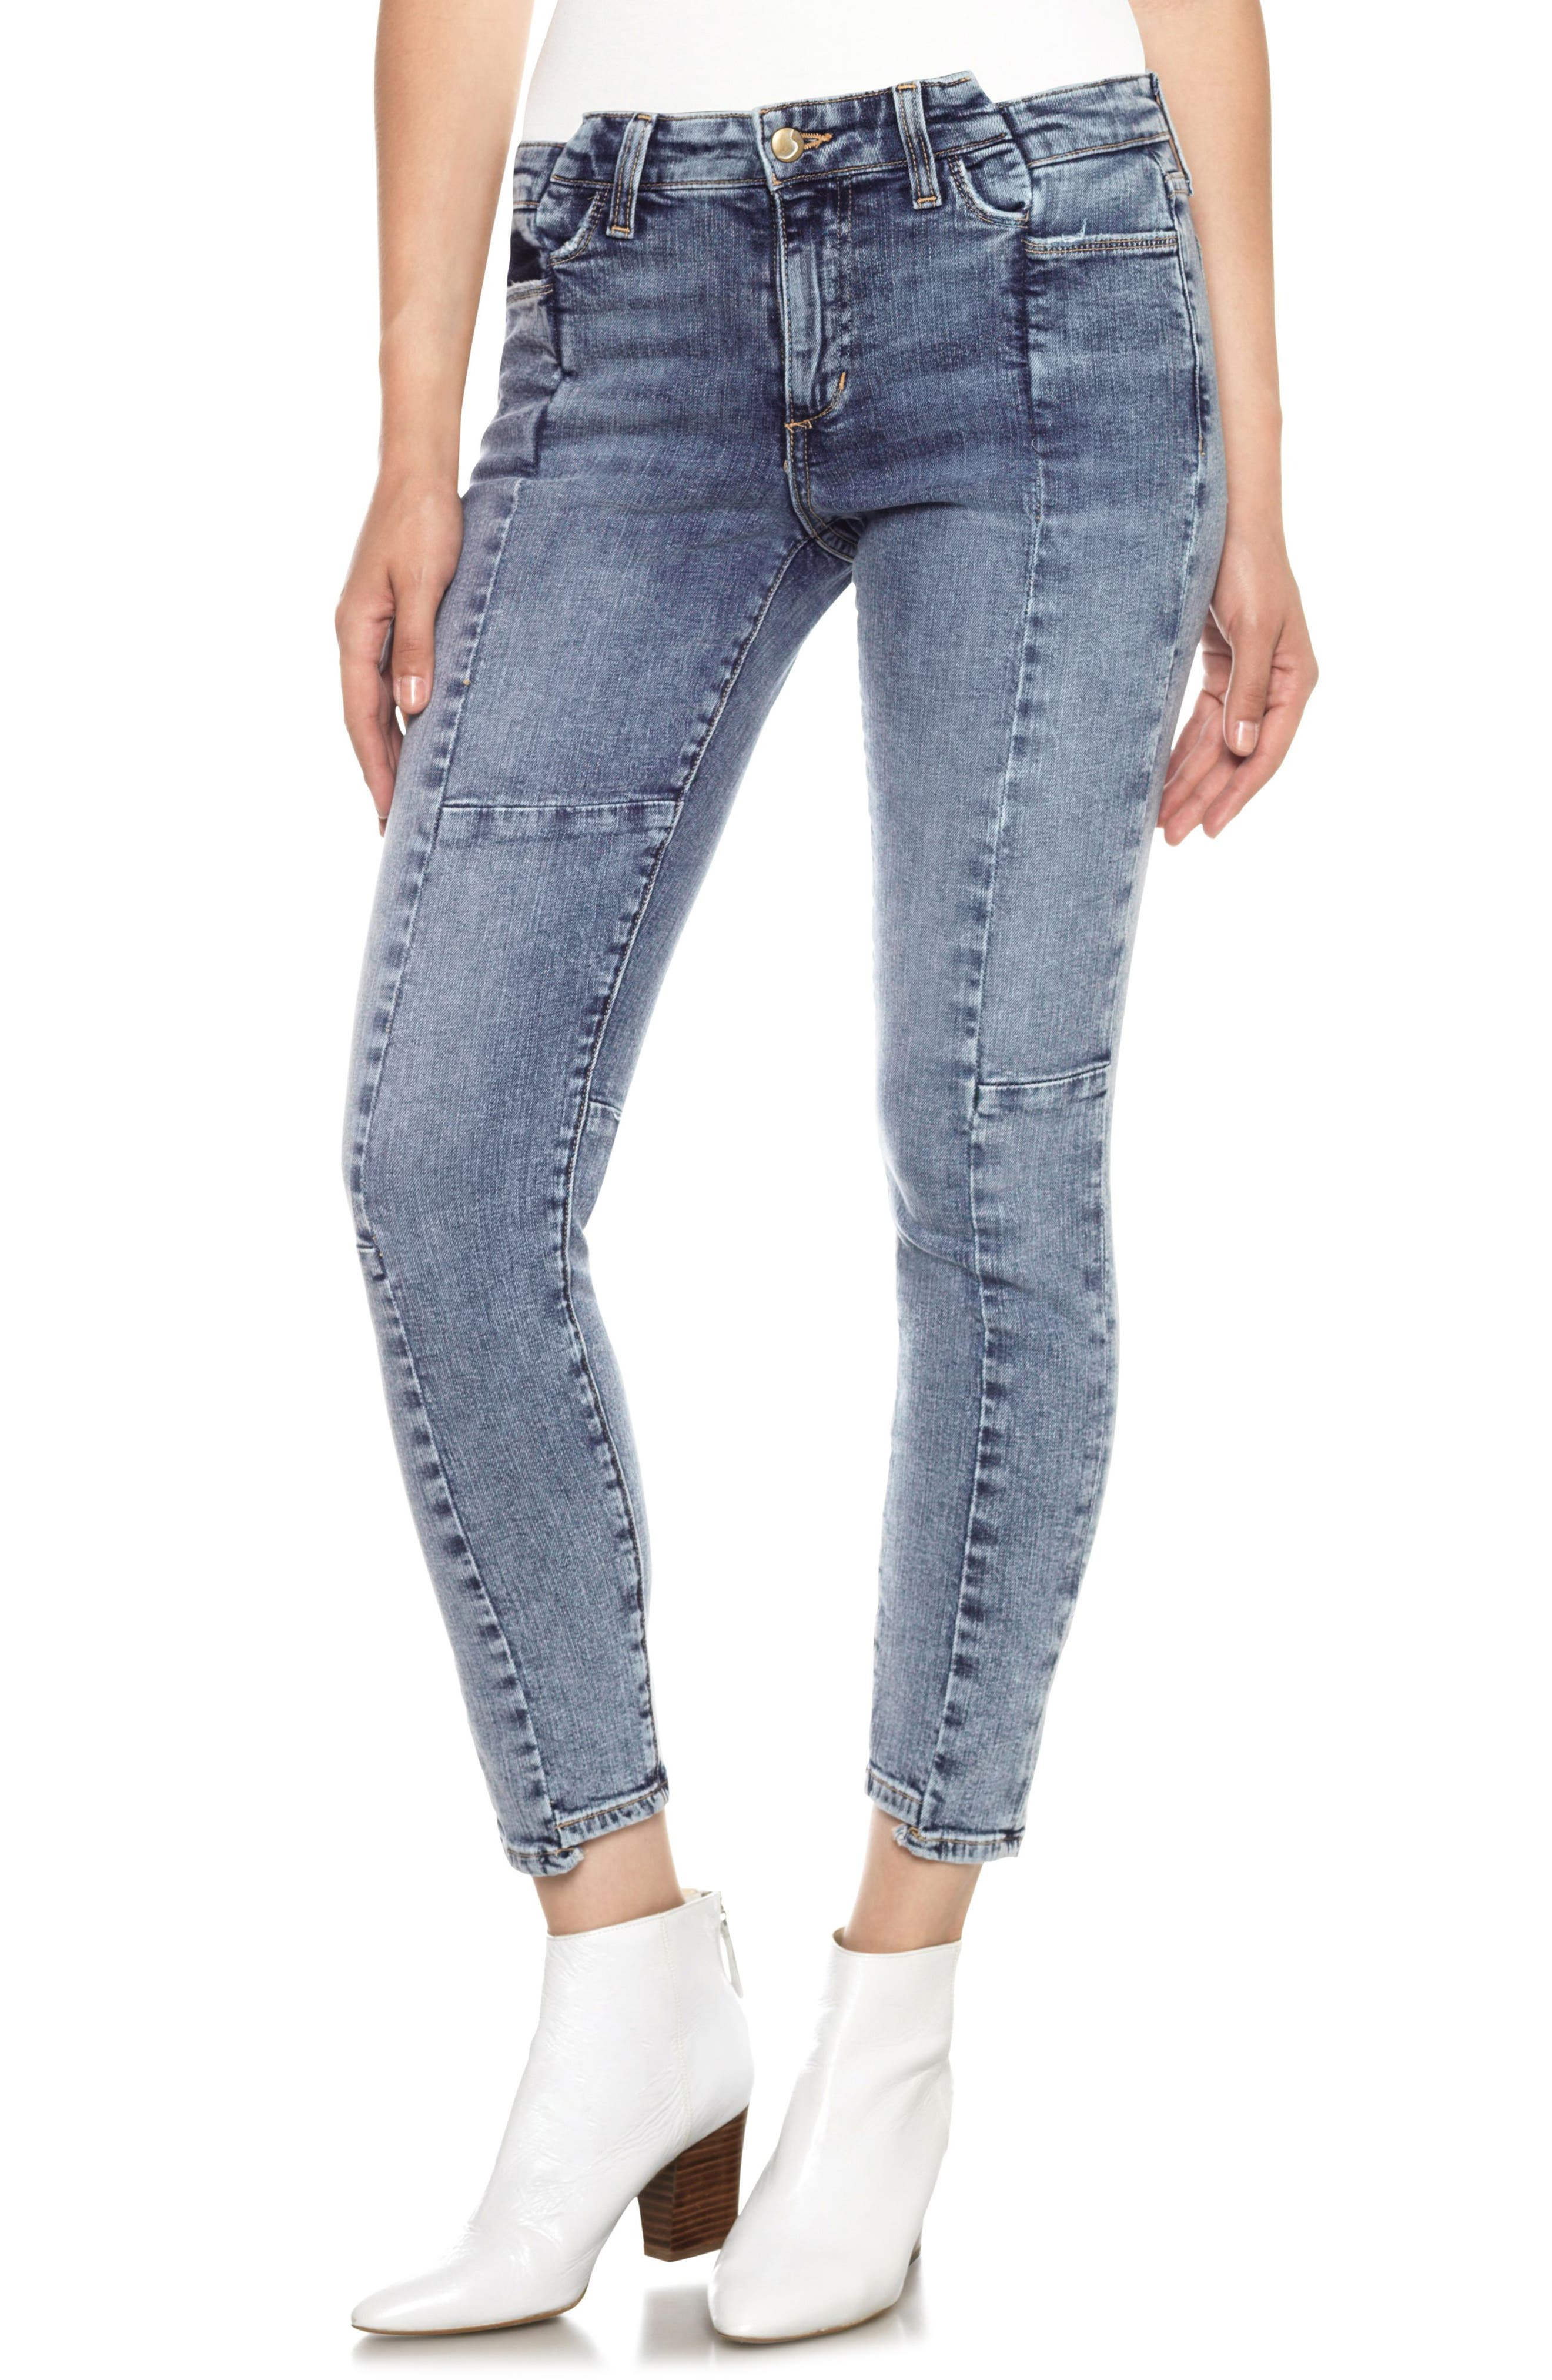 Smith Skinny Ankle Jeans,                             Main thumbnail 1, color,                             010